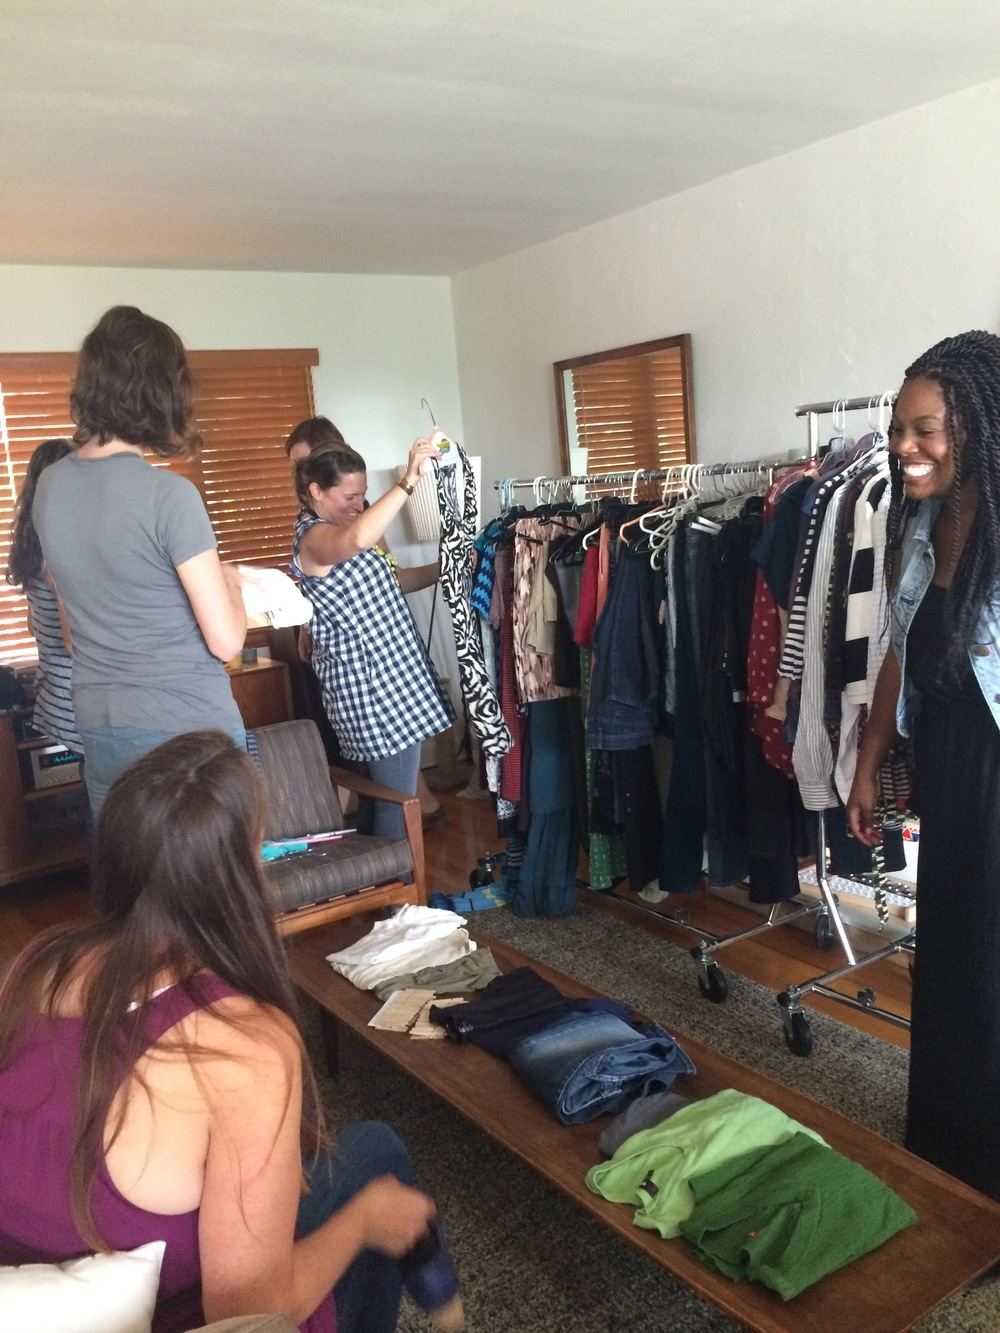 At my client, Kat'es swap, she rented racks and set up all the clothing in the living room. Refreshments were in the adjoining dining room and guests changed in one bedroom.